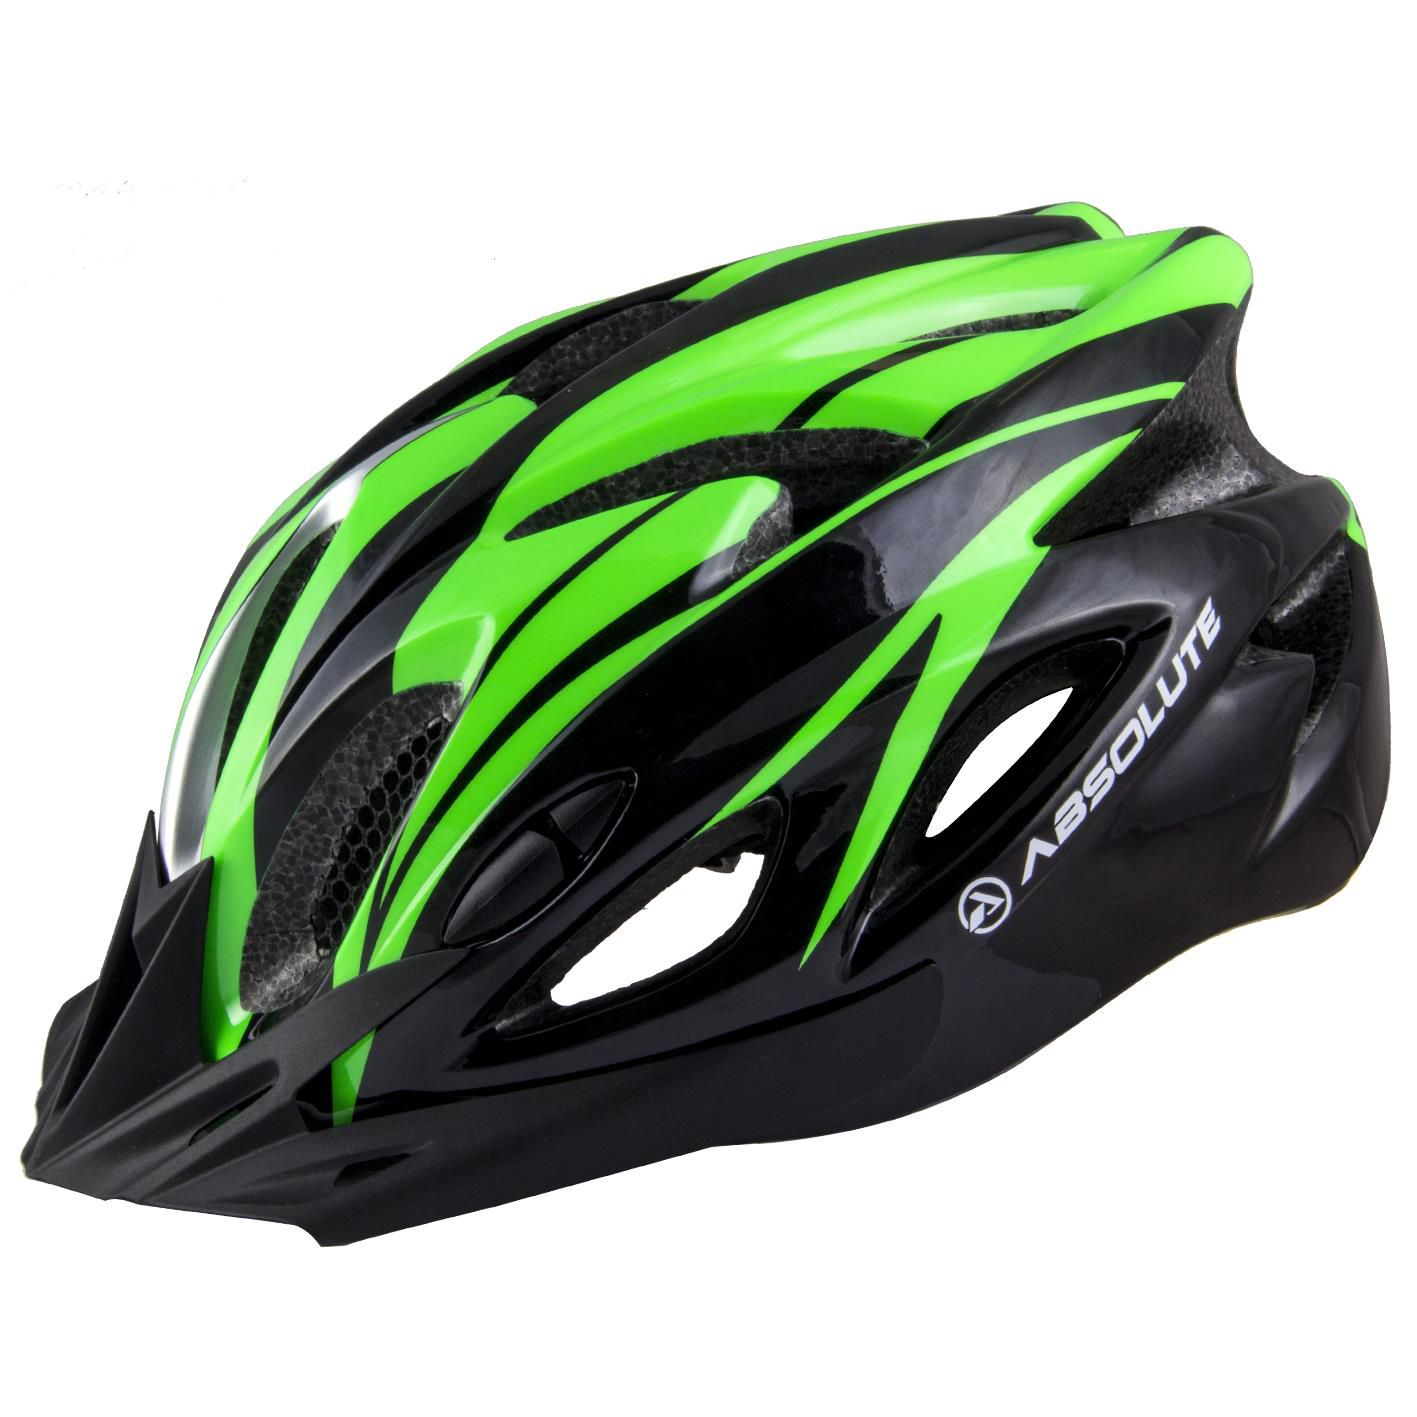 Capacete Ciclismo Bike Absolute Wt012 Led Pisca - Nero